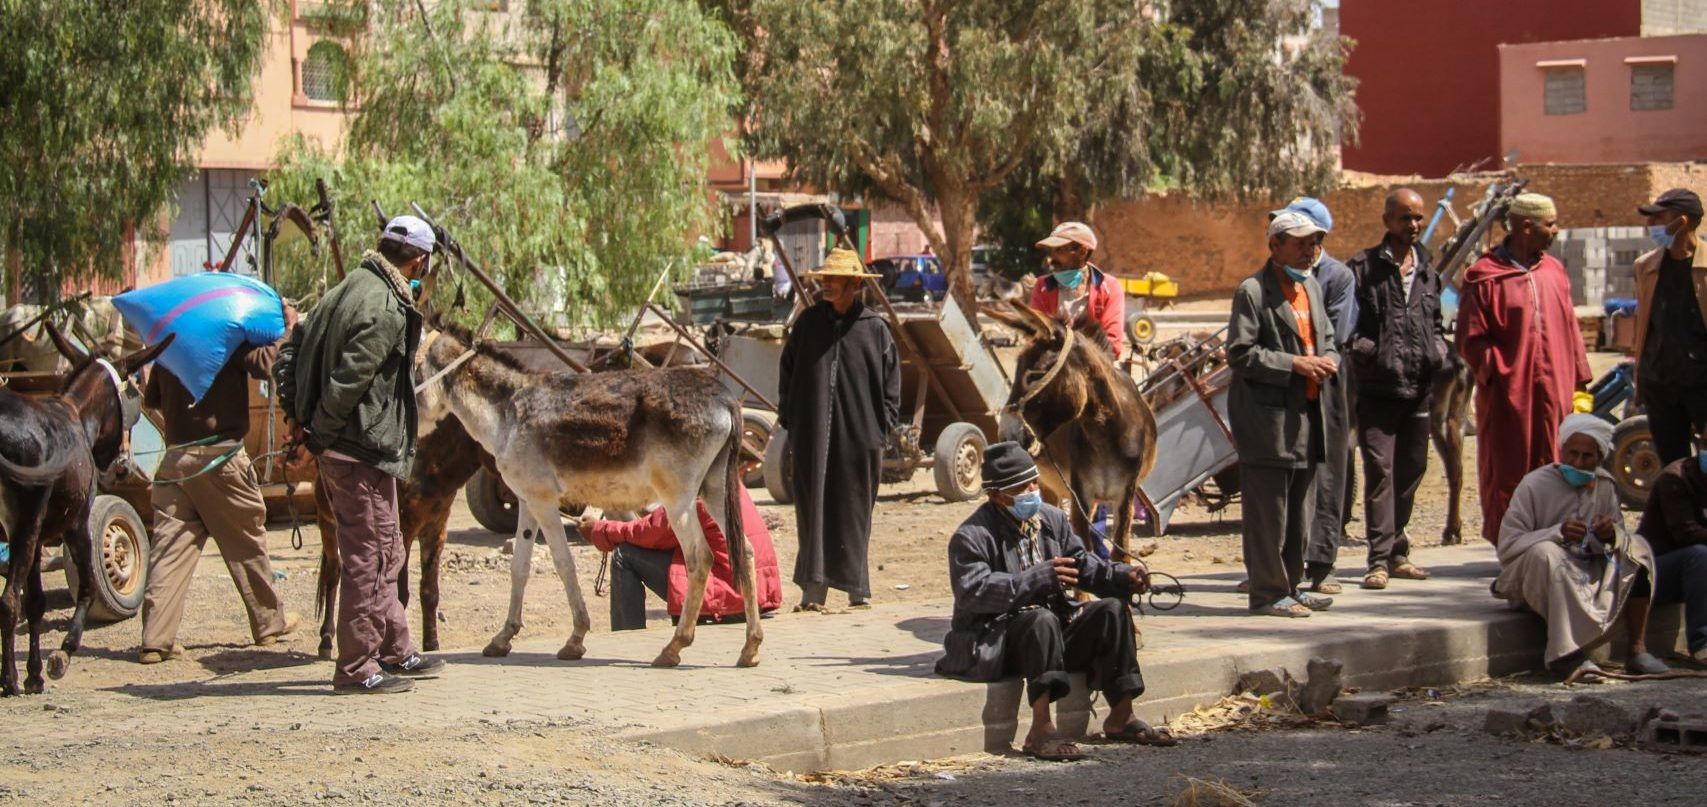 Providing a lifeline for working animals in Morocco